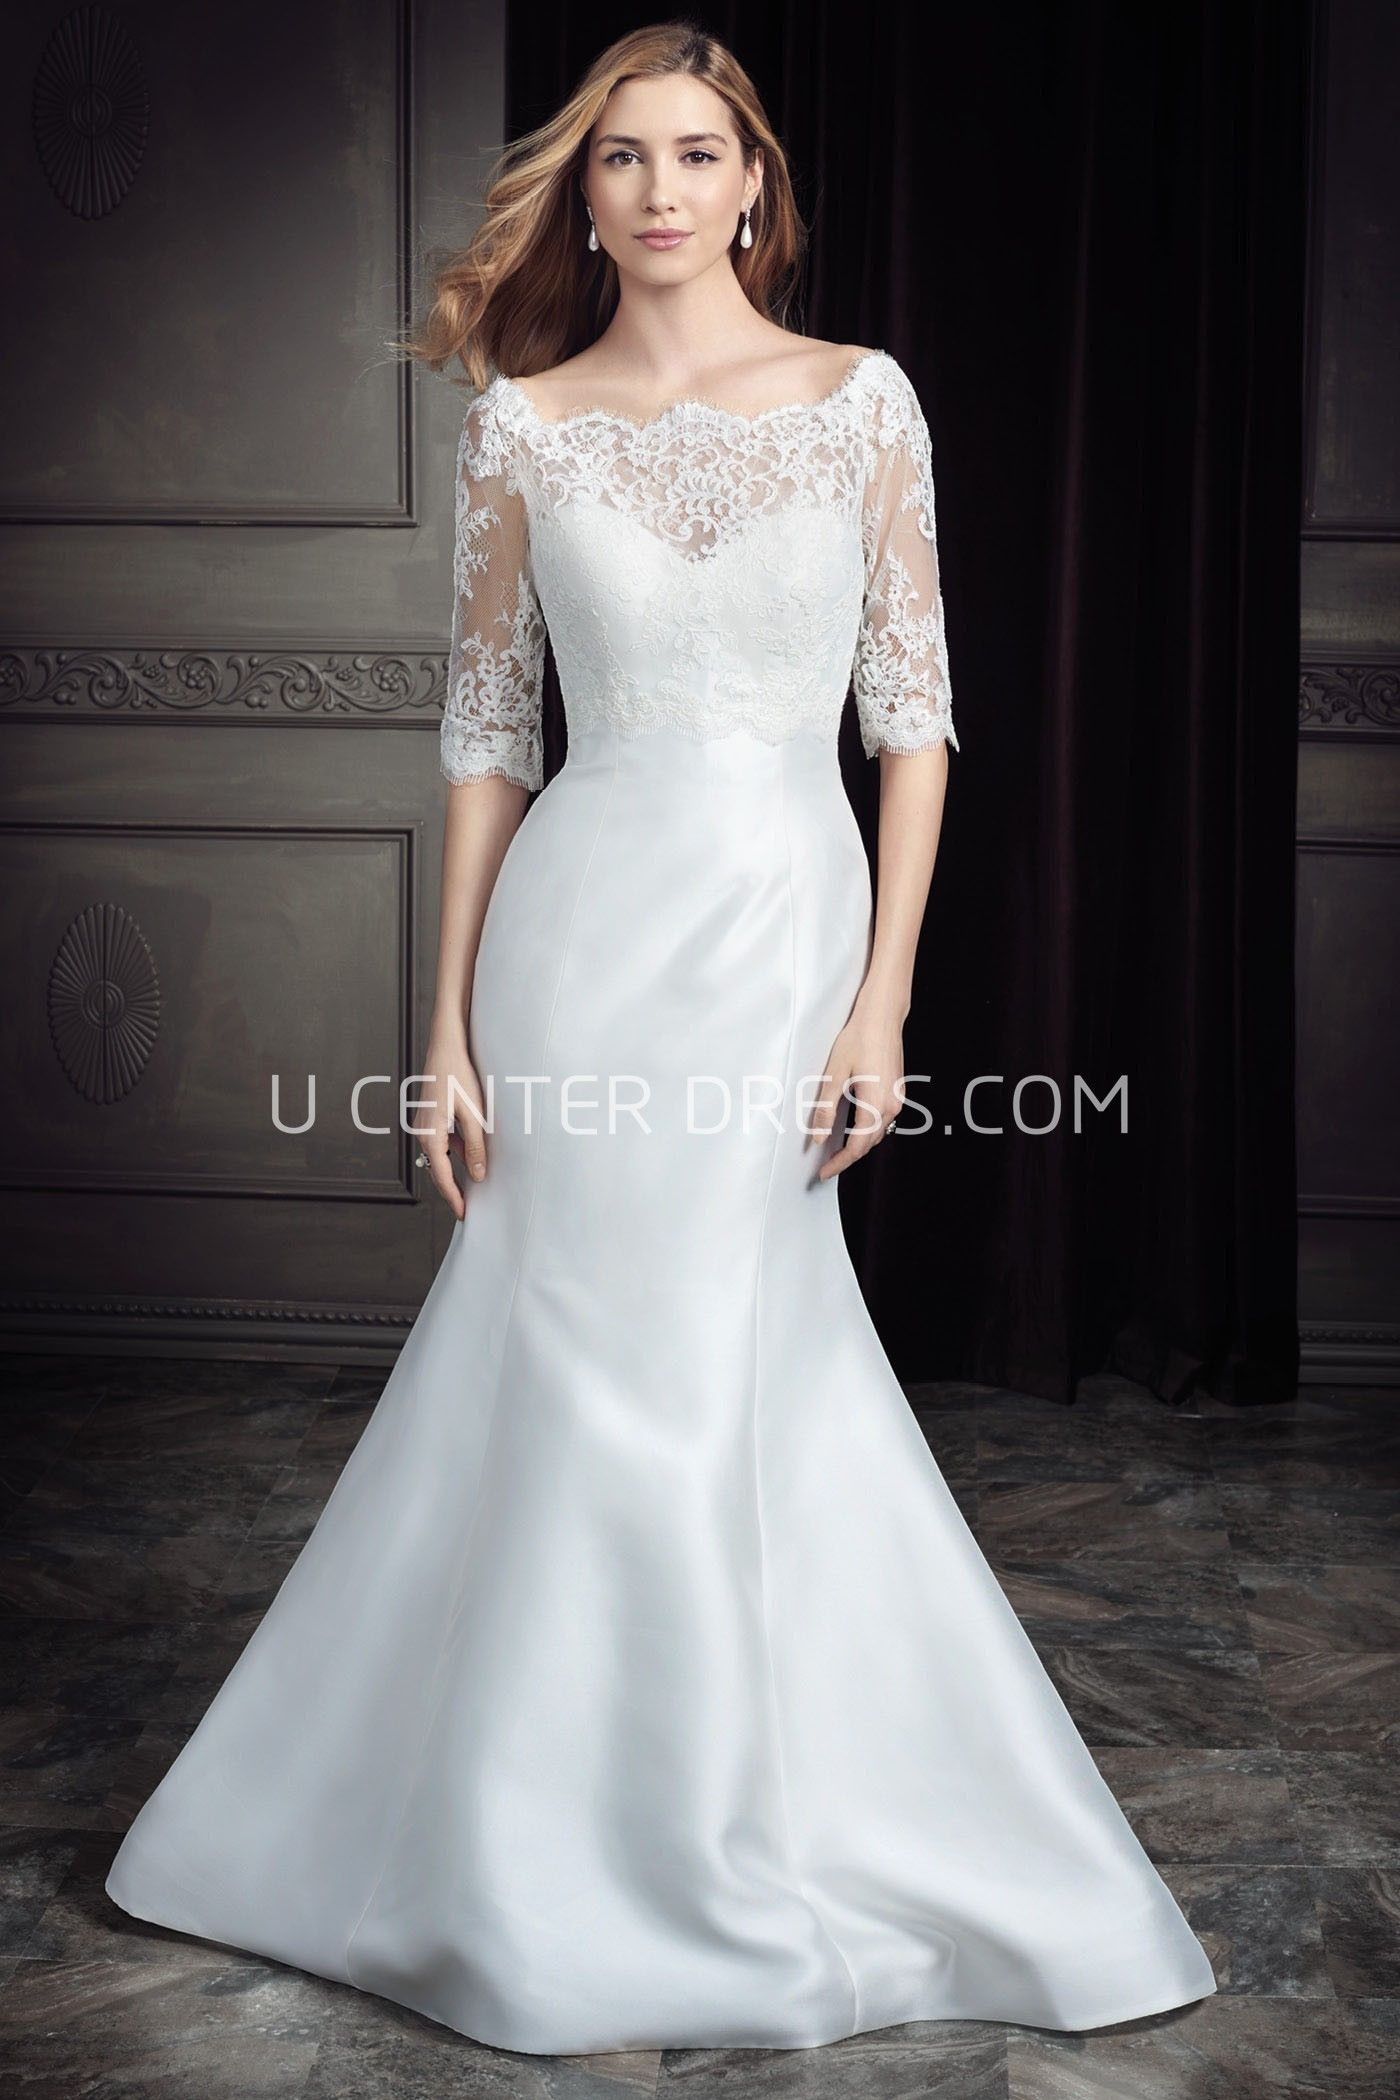 Ustrumpet bateauneck halfsleeve long satin and lace